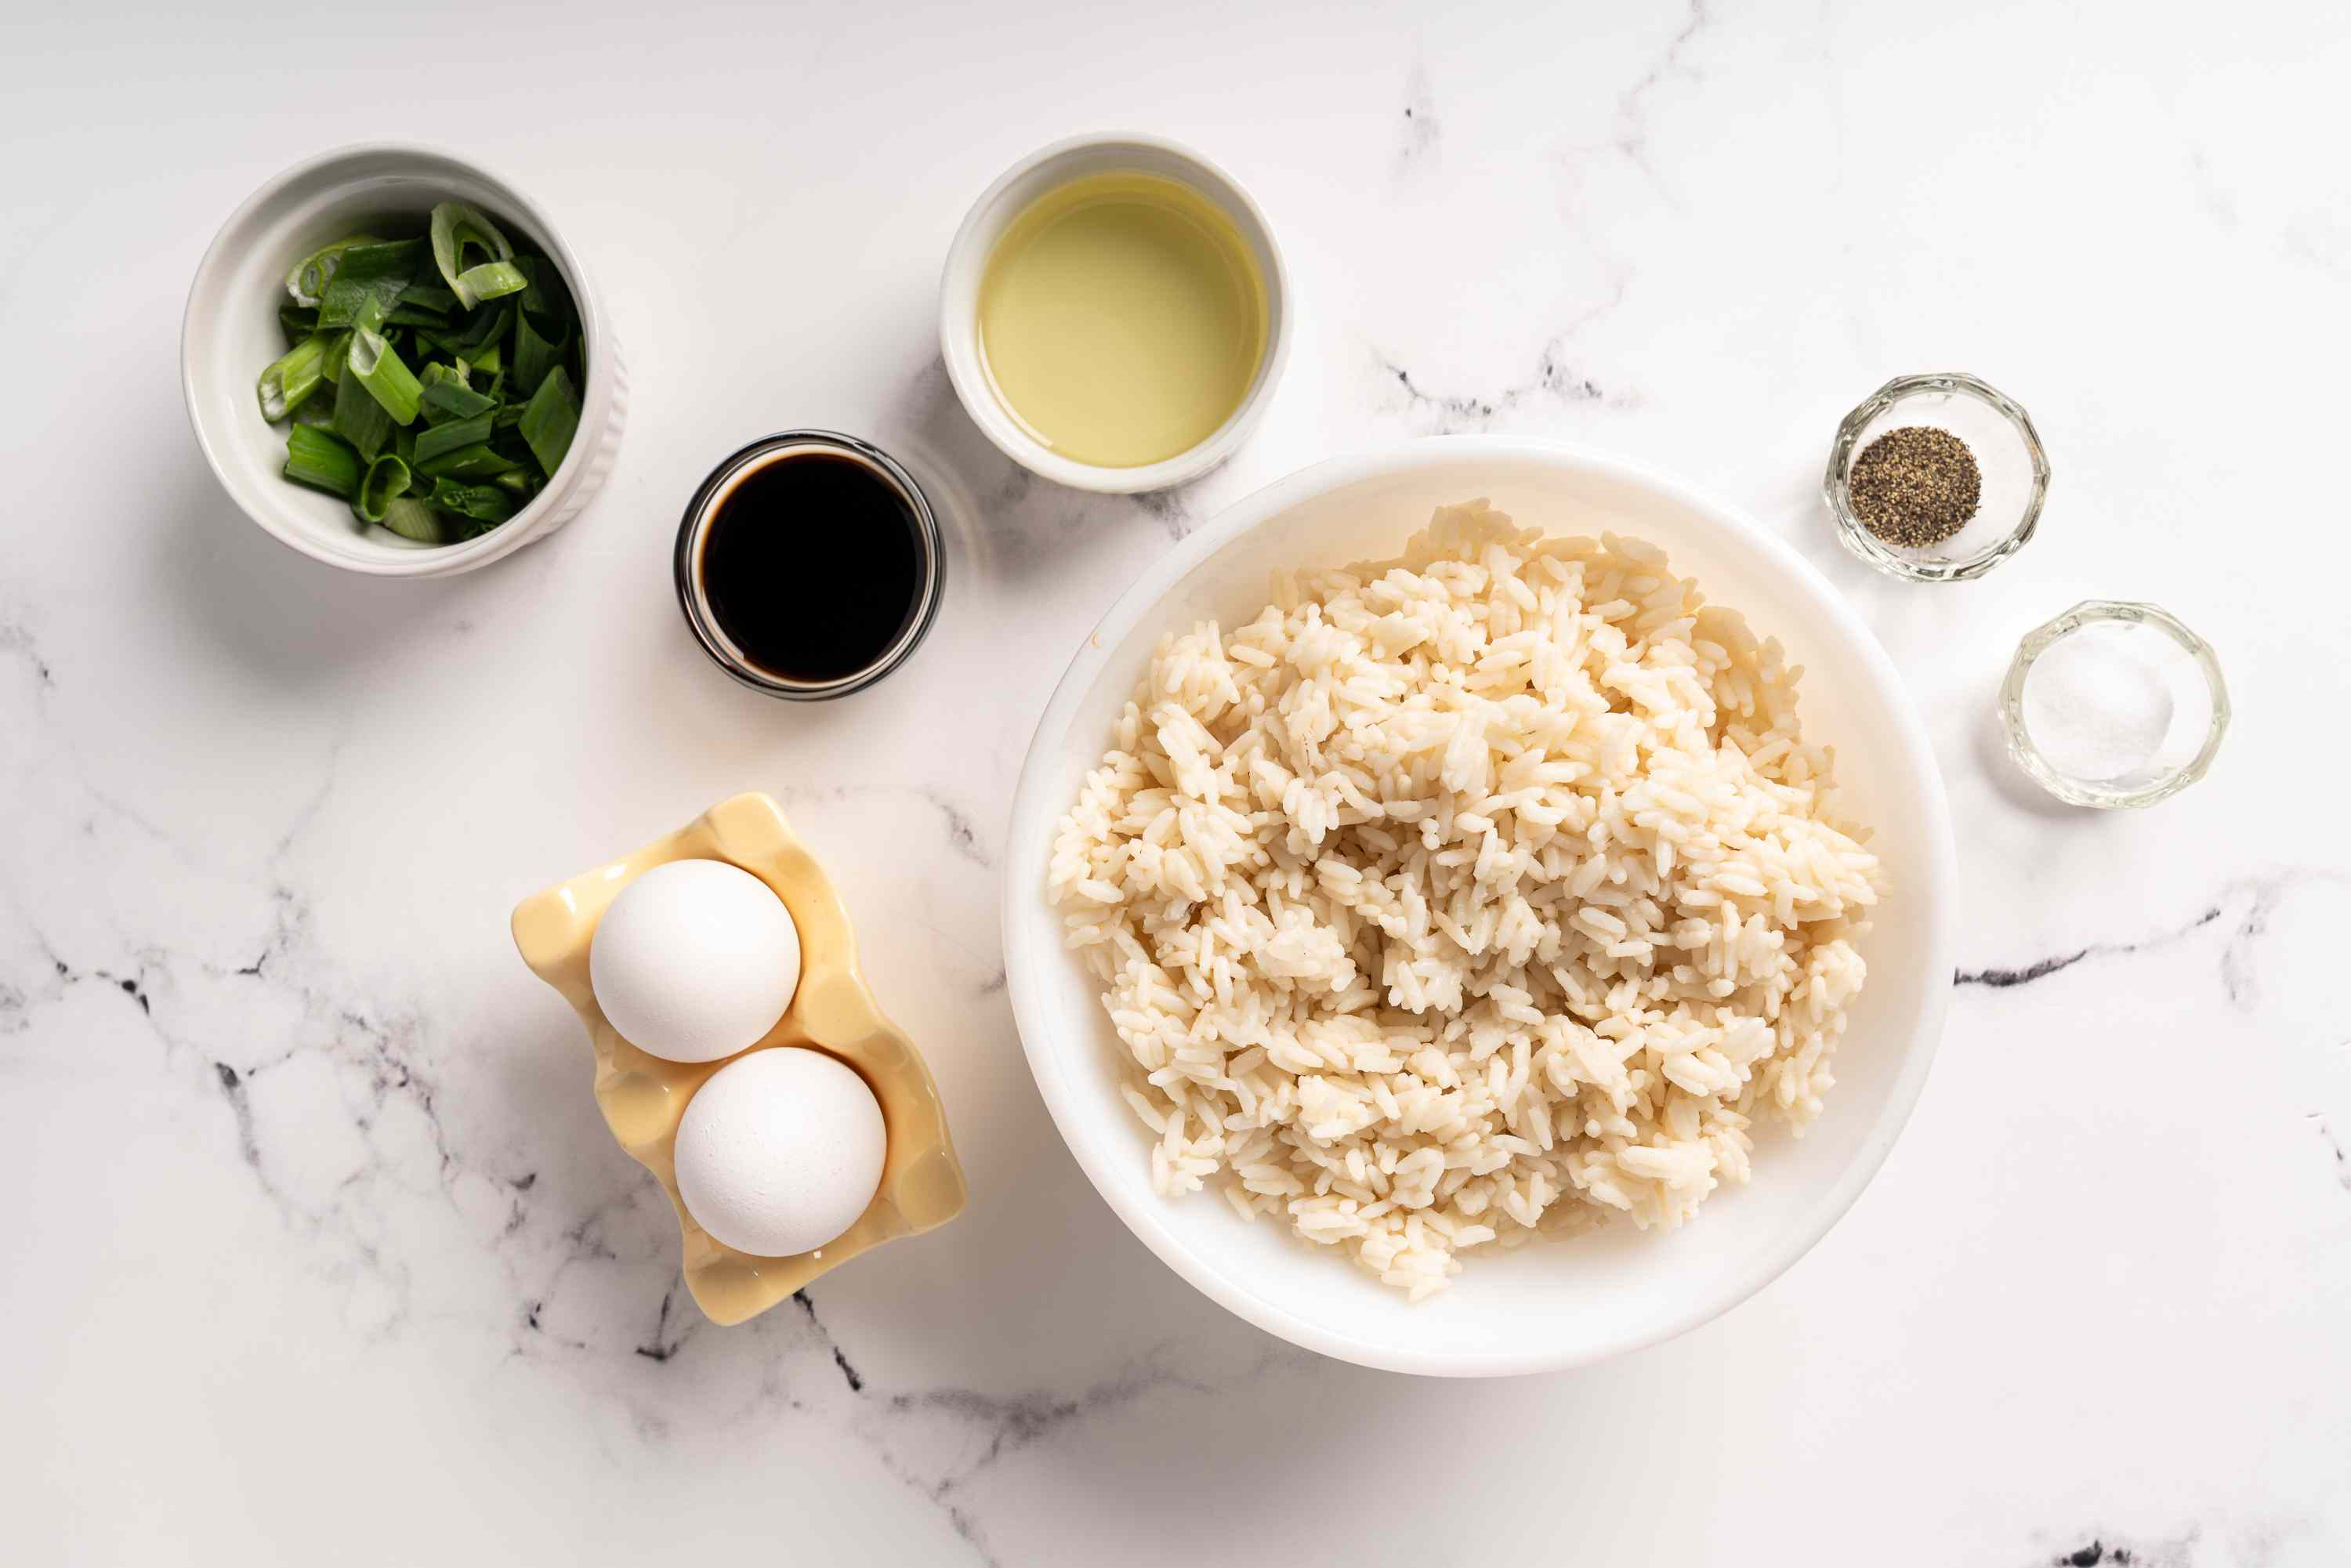 Ingredients for plain fried rice